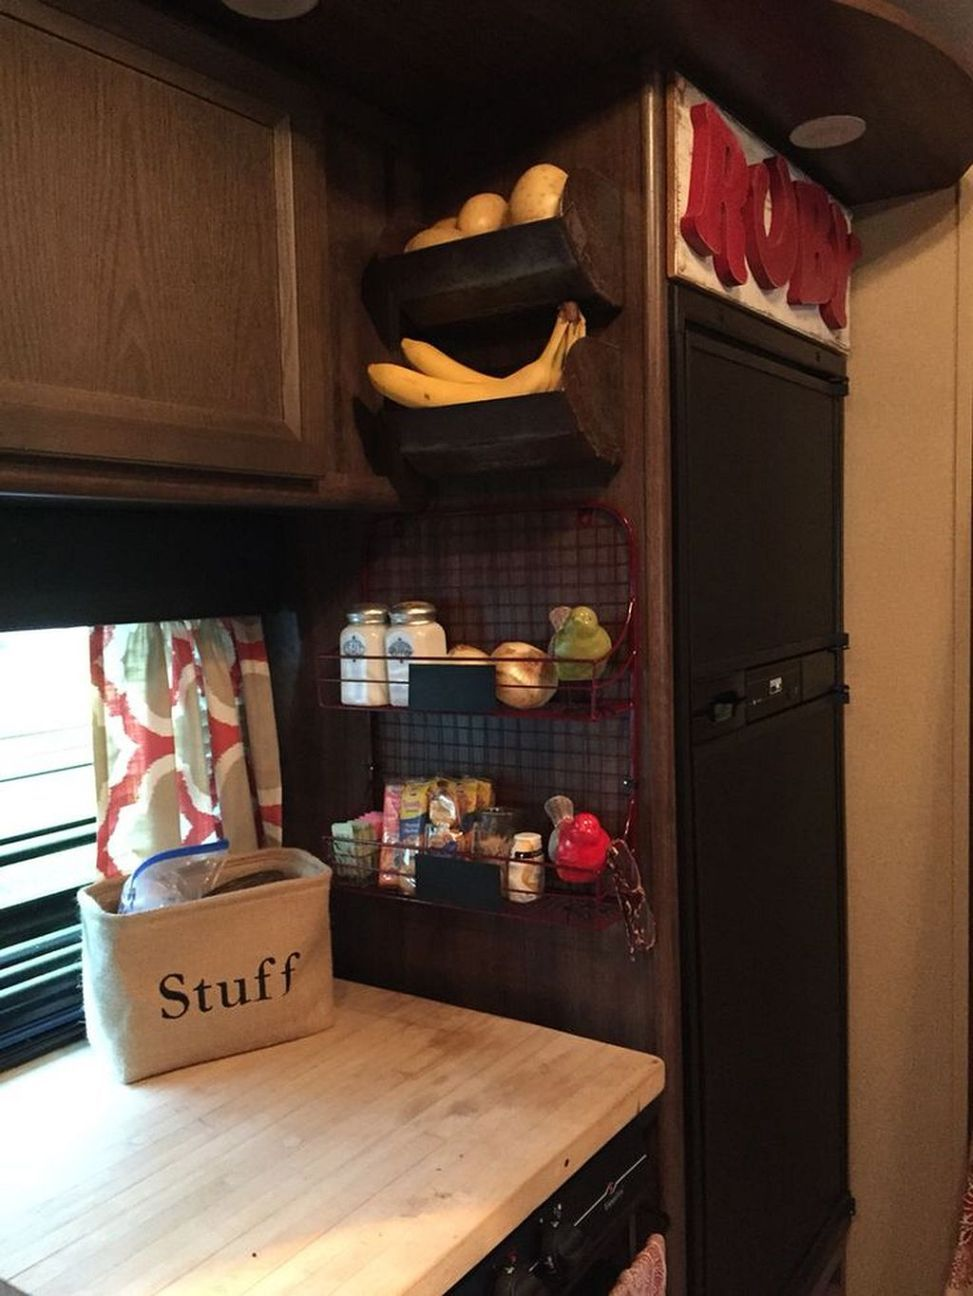 Mount Rv Organization Accessories Camping Remodeled